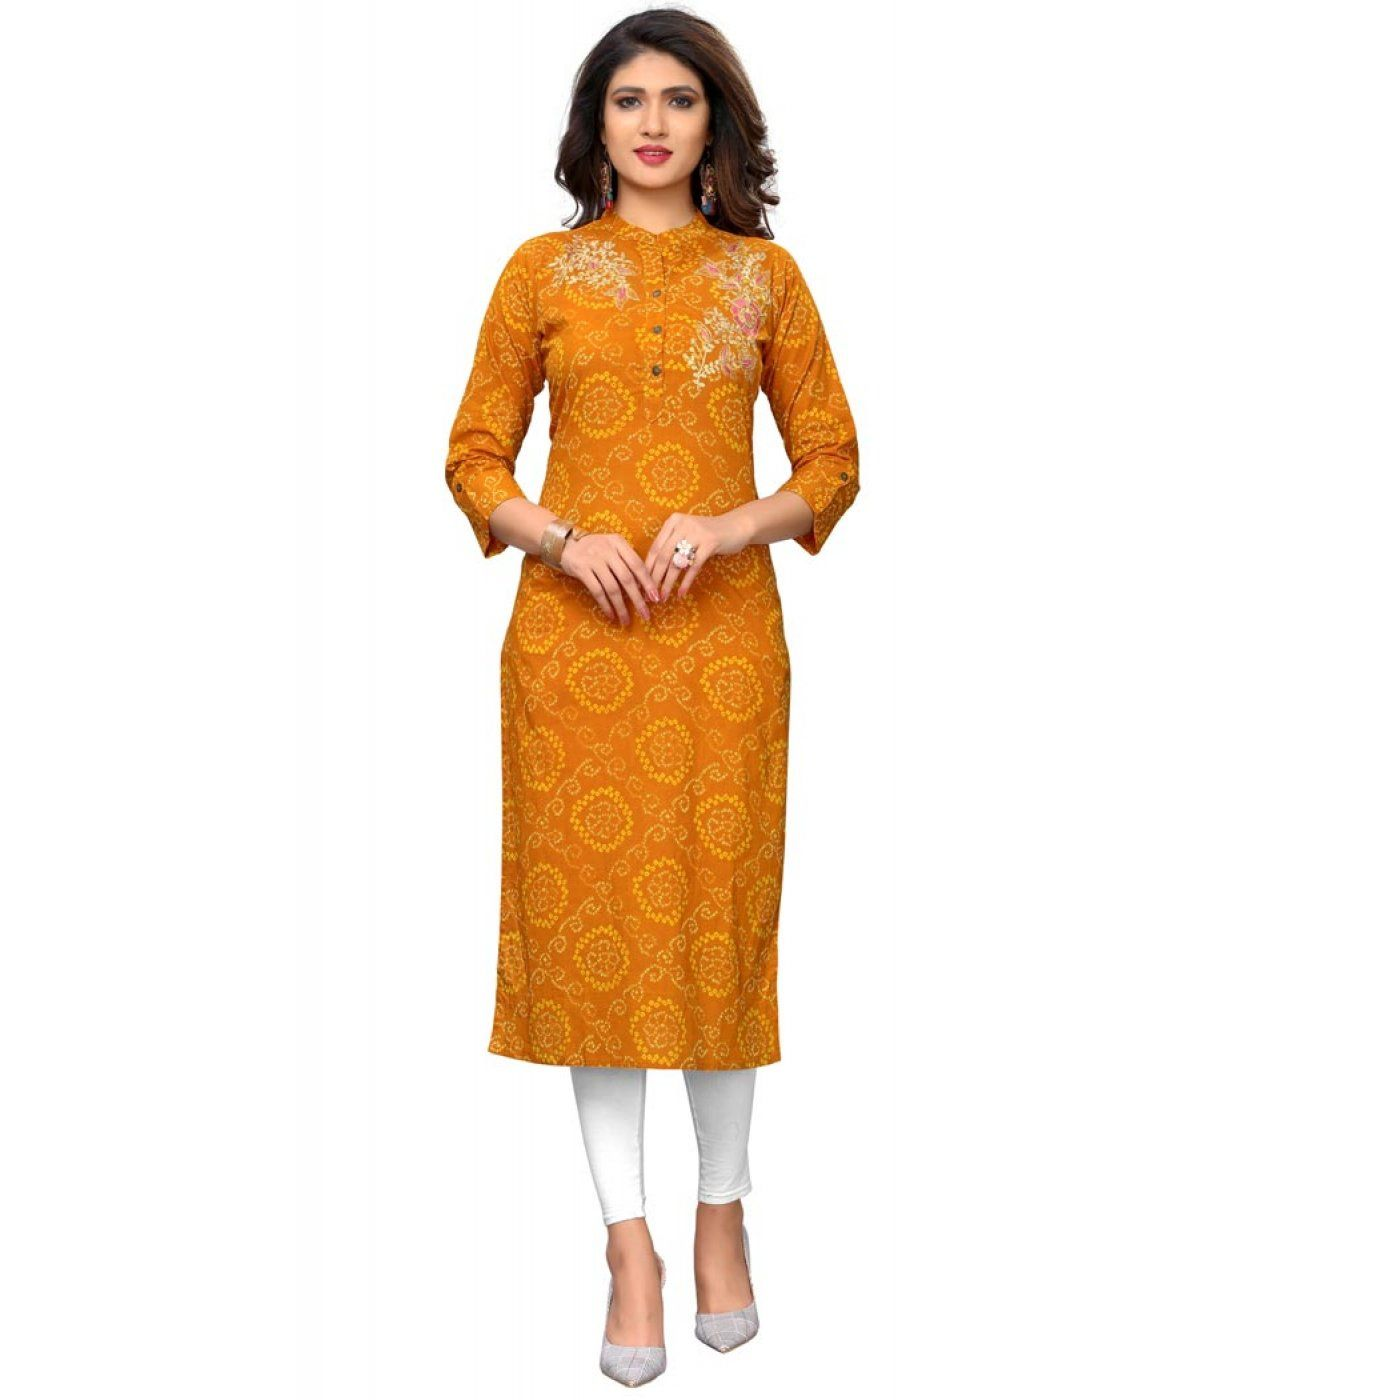 2f512a0ee79221 Yellow Color Cotton Party Wear Ready Made Kurtis For Girls - 404548830 30%  OFF Sale  kurtis  tops  kurta  readymadekurti  fashiontops  indiankurta ...